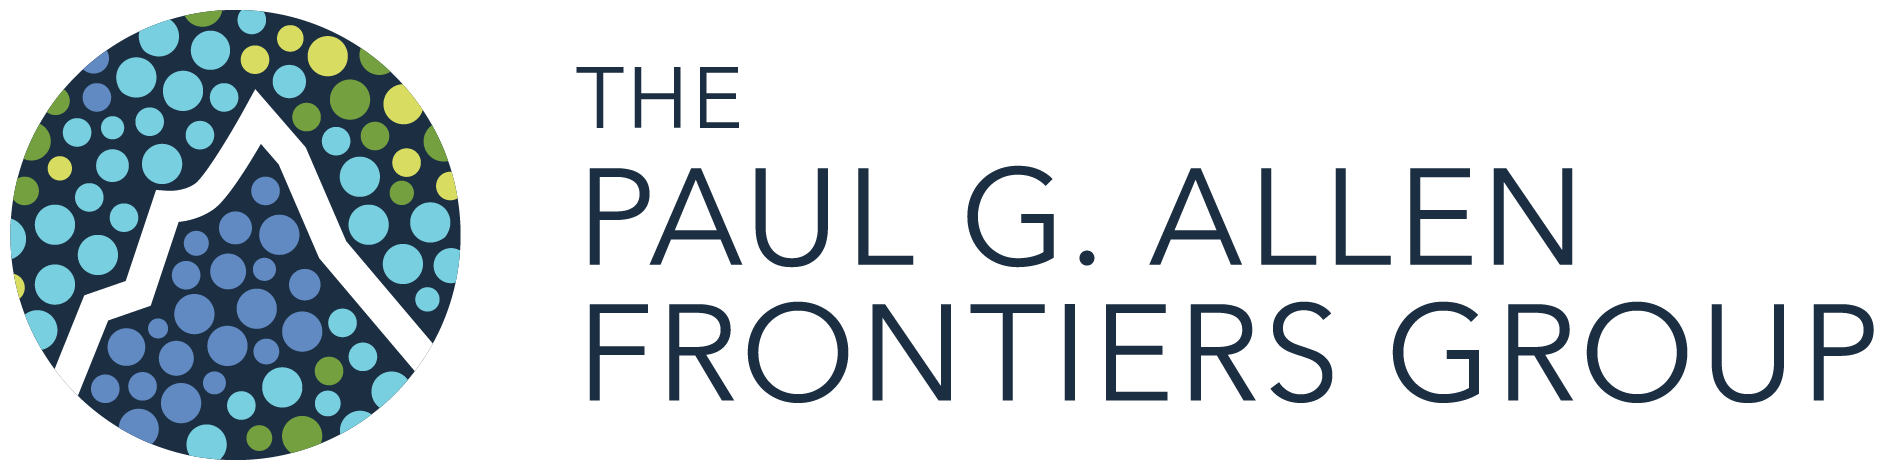 Paul G. Allen Frontiers Group logo